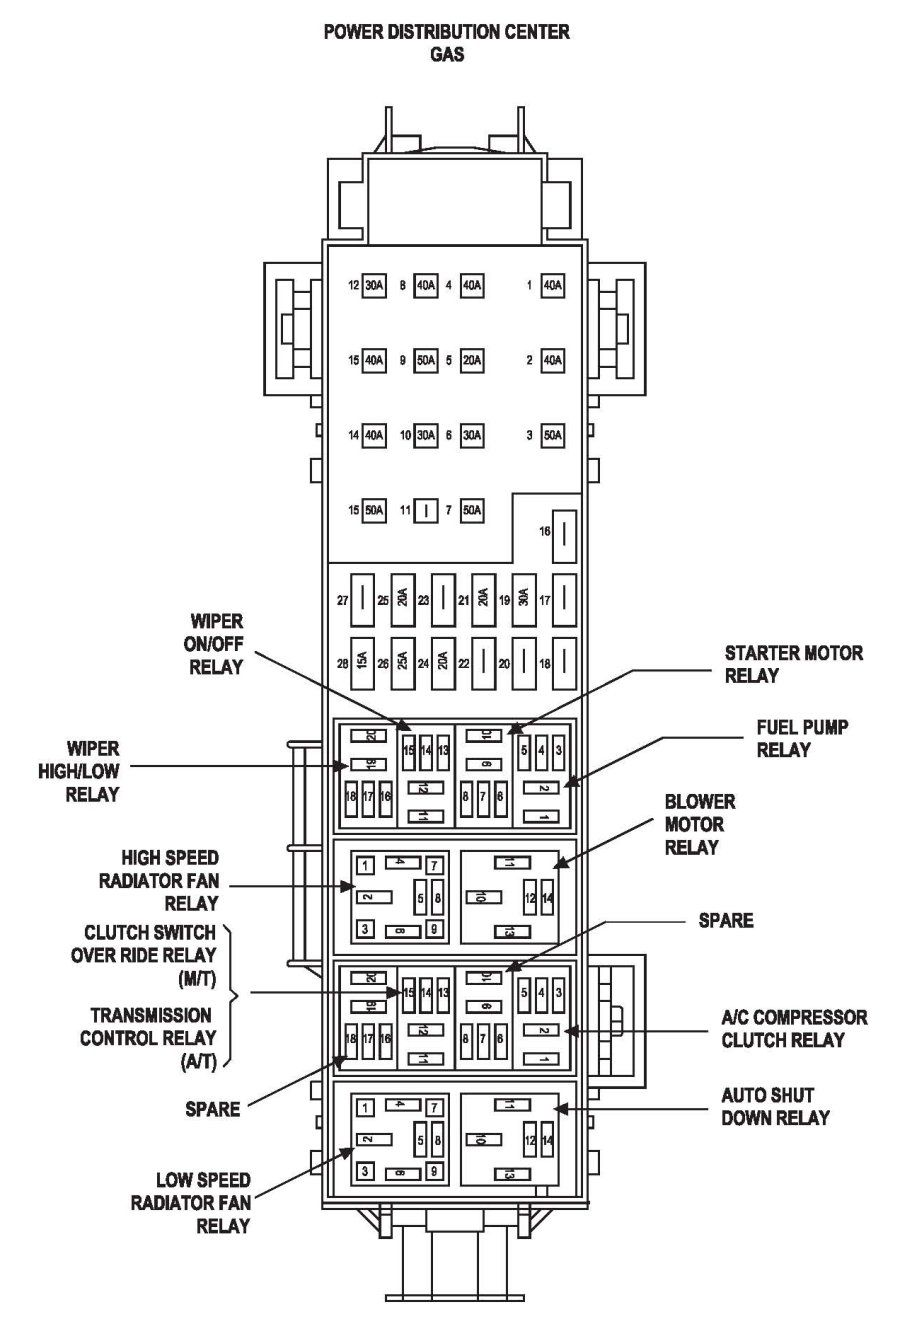 Jeep Liberty Fuse Box Diagram - image details | Jeep liberty, Jeep commander,  Fuse boxPinterest